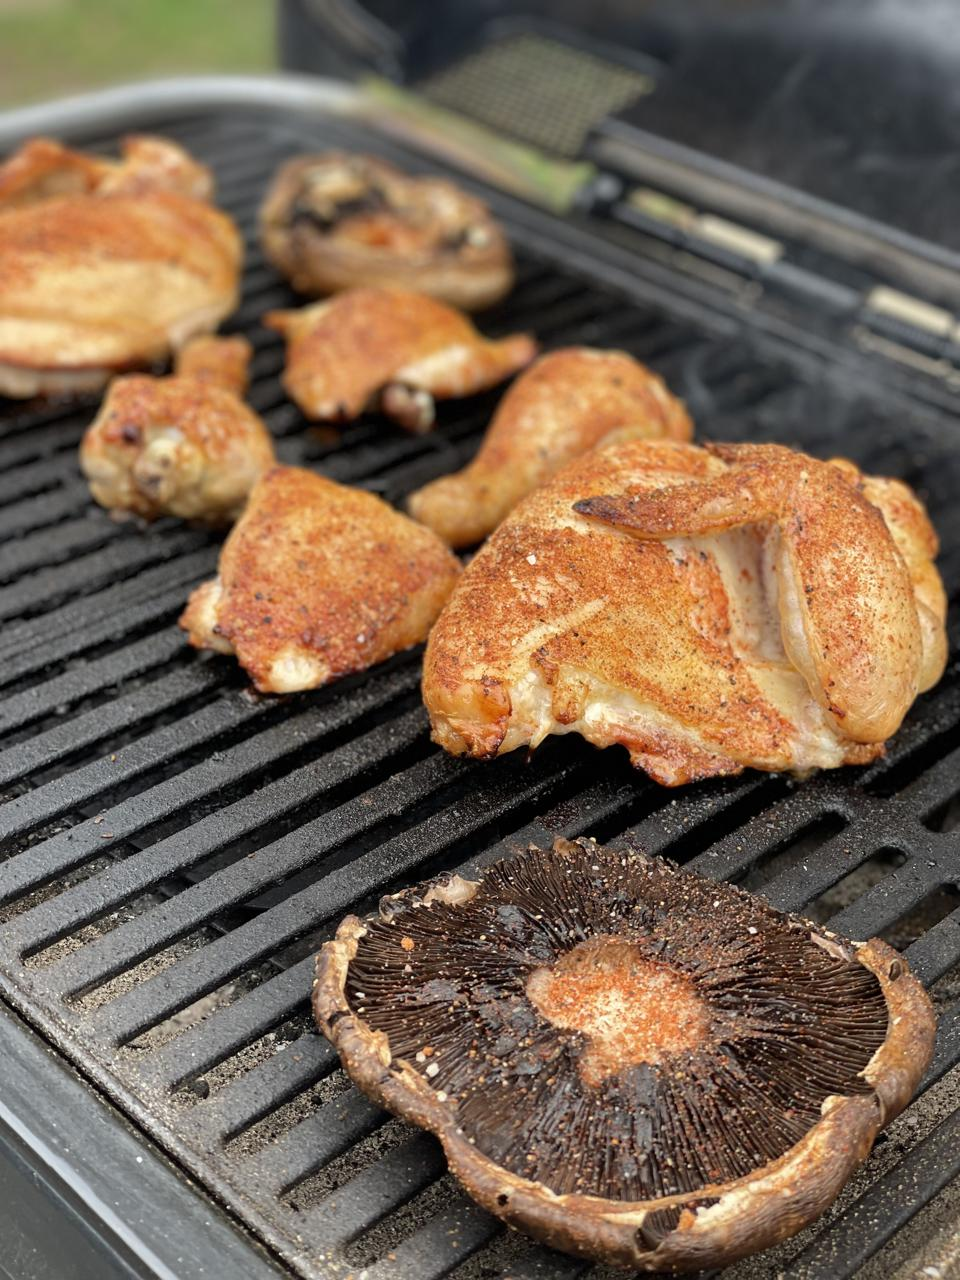 Spice Rubbed BBQ Chicken and Portobello mushrooms are photographed on the cooking grates of the Spark Grill